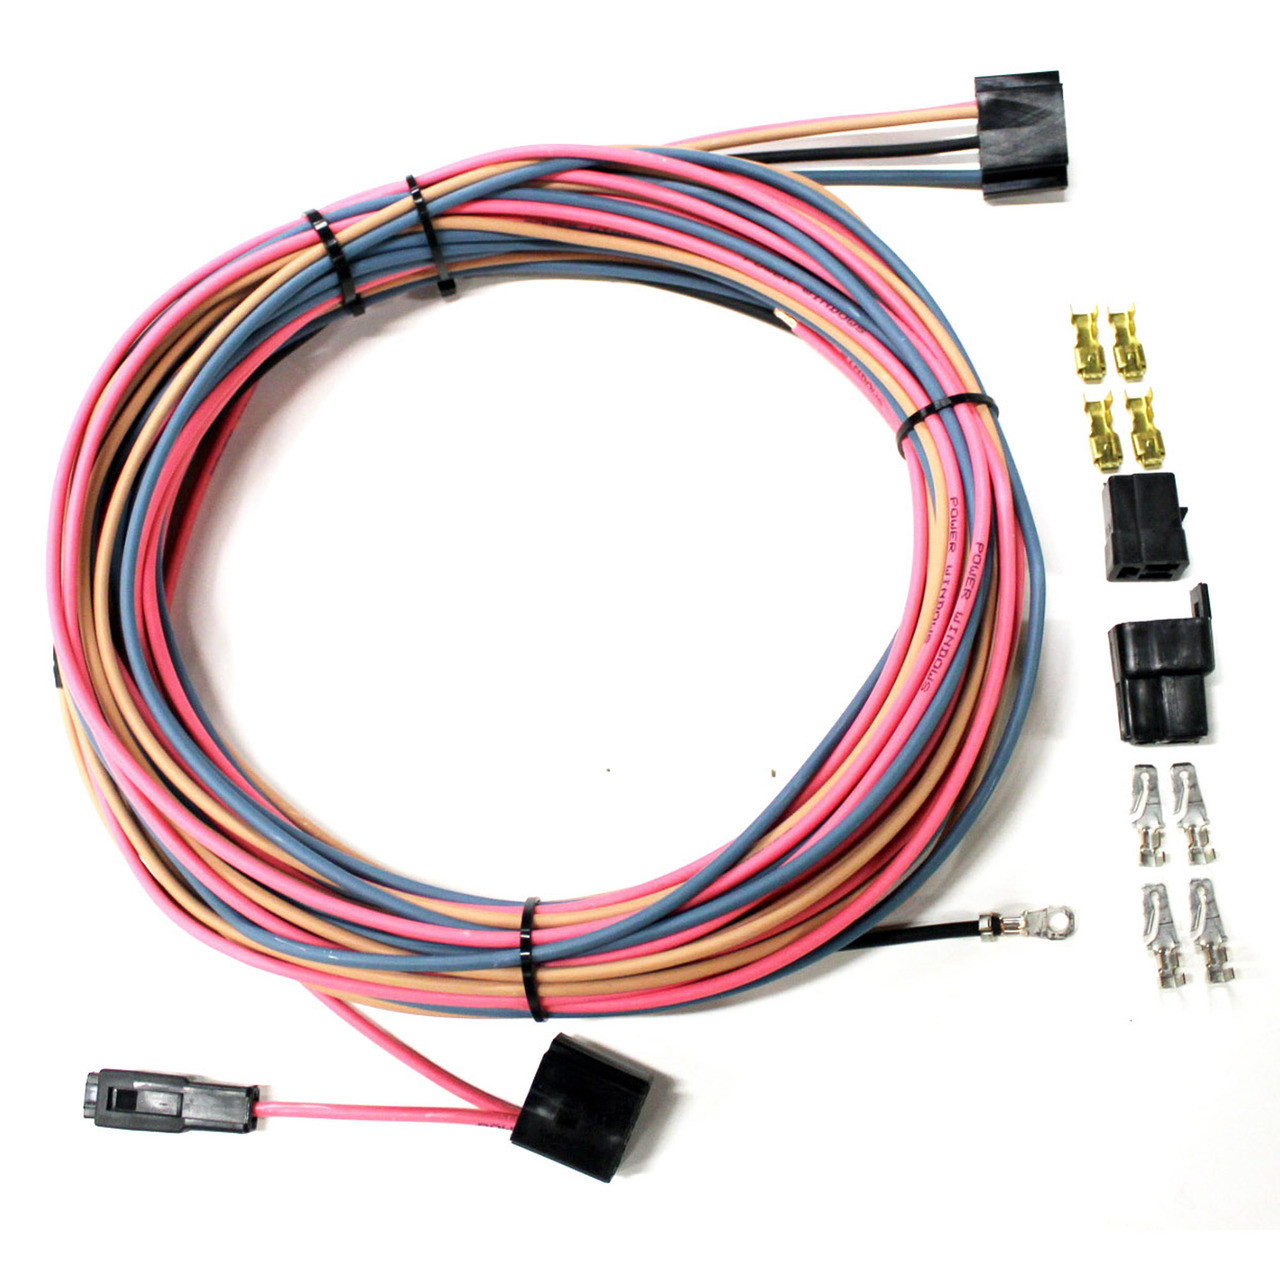 1970 Ford Mustang Wire Harness Complete Wiring Harness Kit 1970